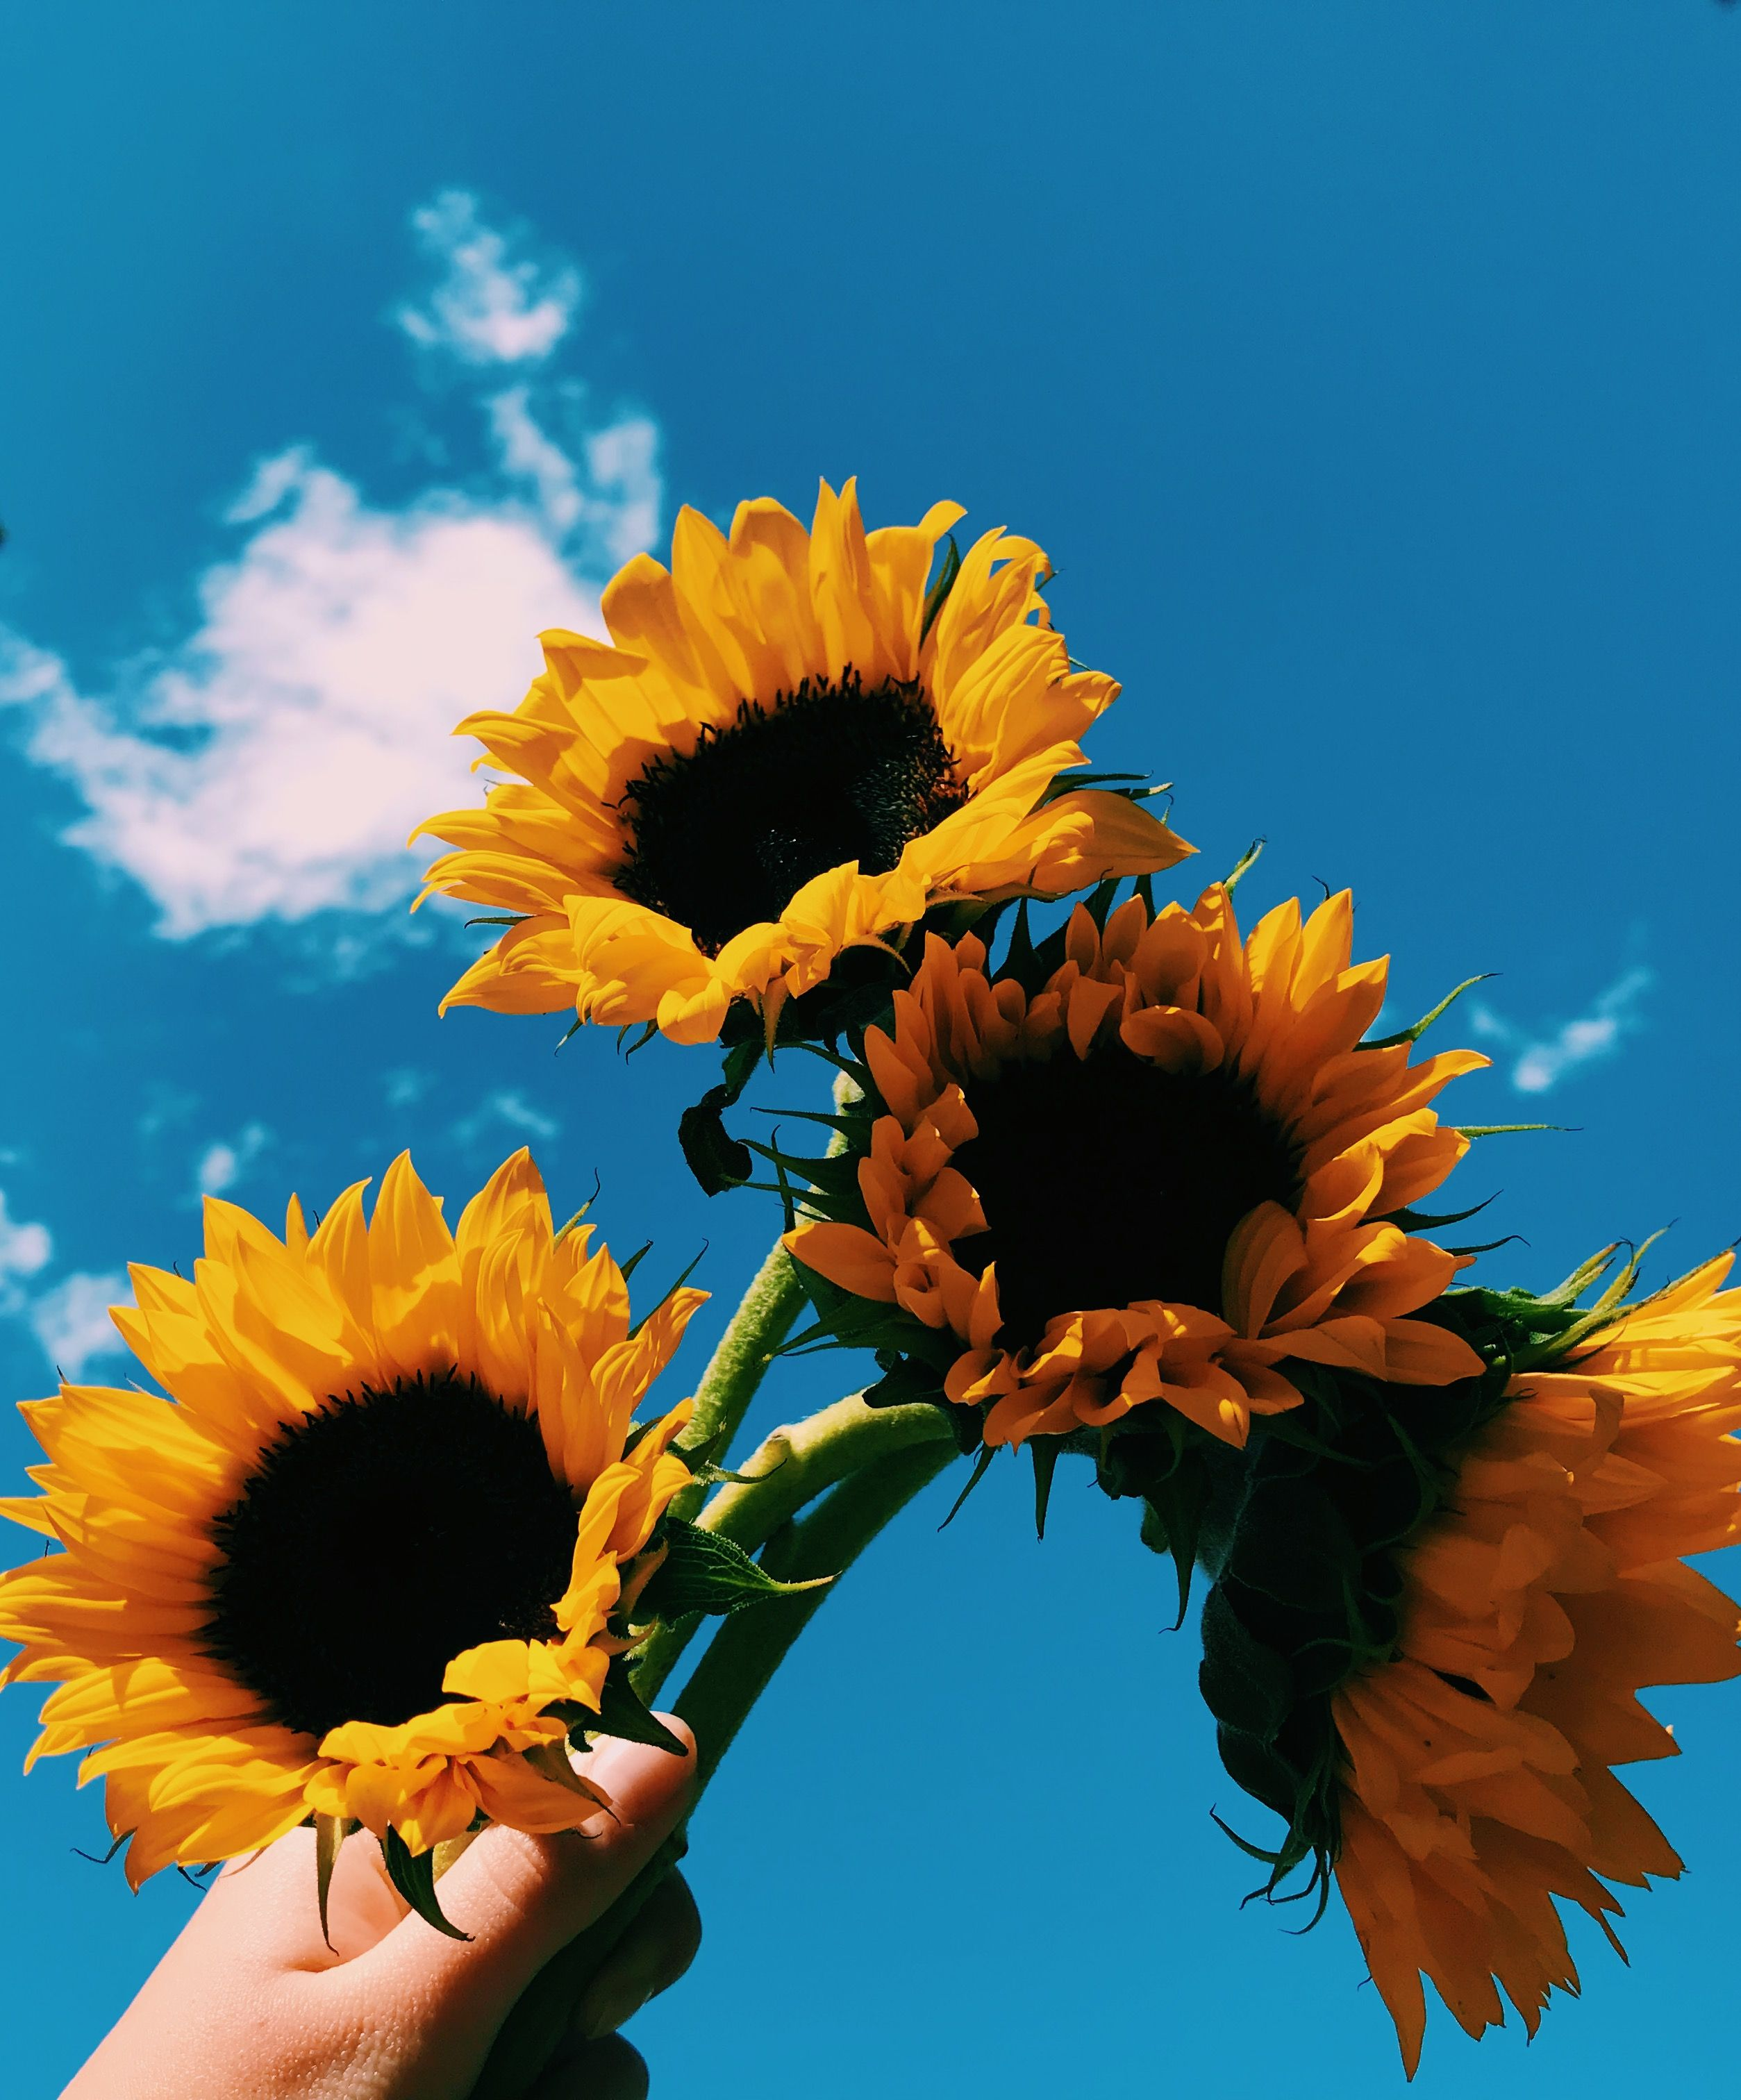 🖤 Aesthetic Sunflower Profile Pictures - 2021